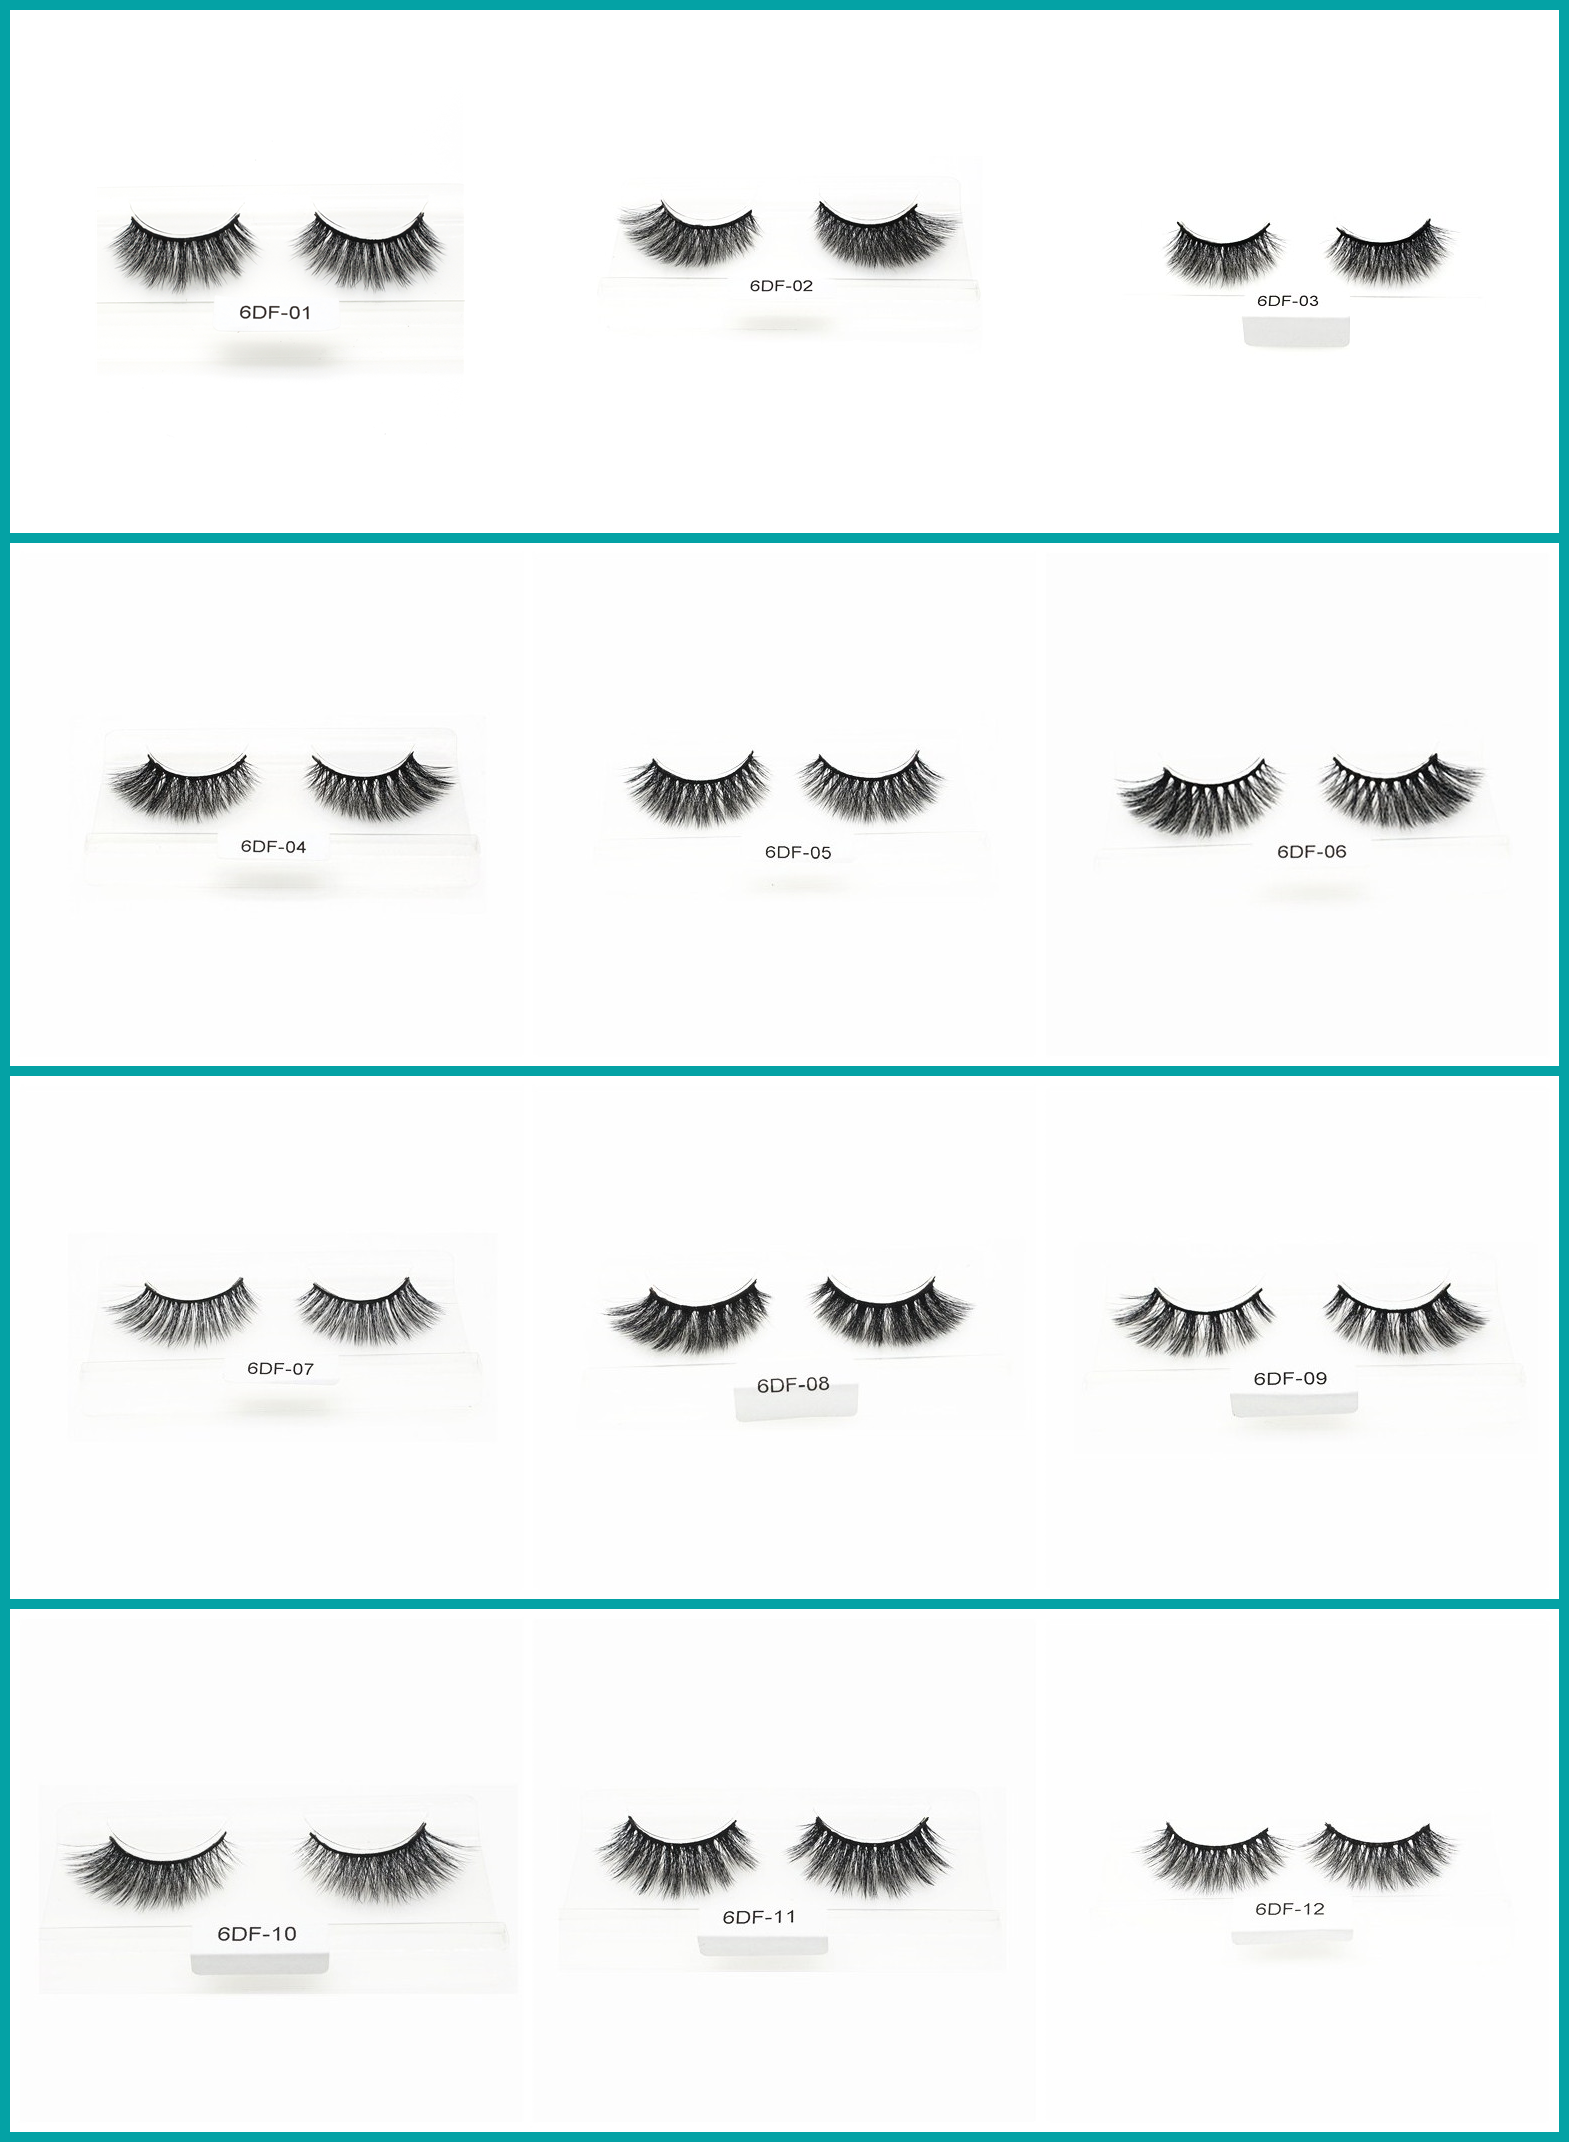 Top Quality 6D Faux Mink Eyelash With Custom Package  6DF-11 - MSDS INCI COA BV SG ISO9001